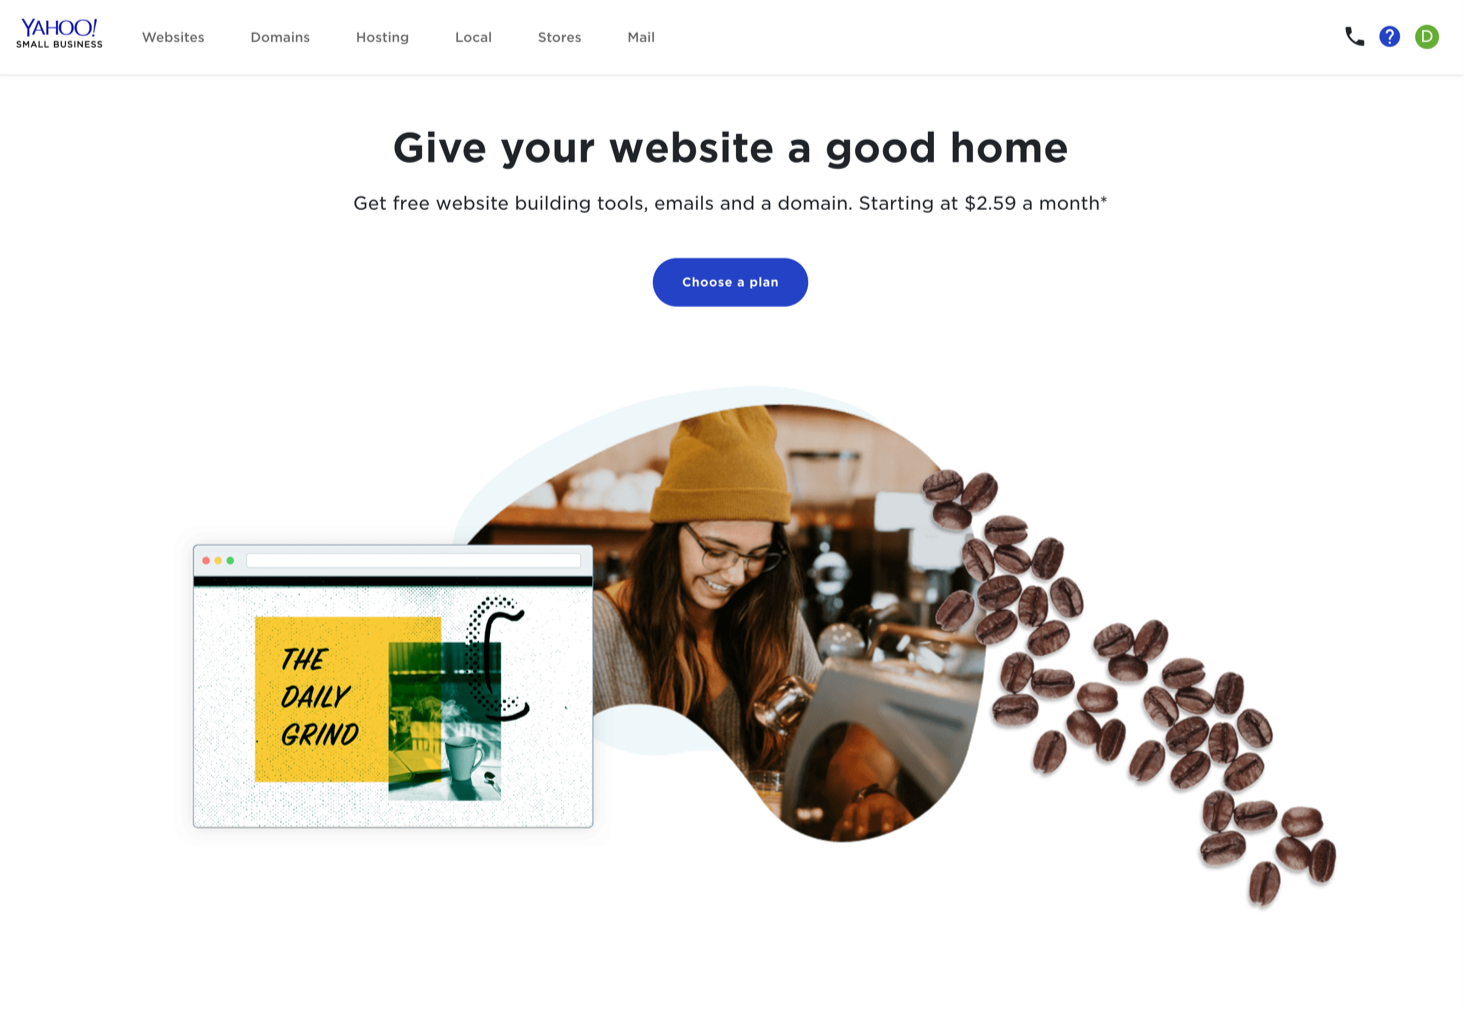 Yahoo Small Business Websites Desktop